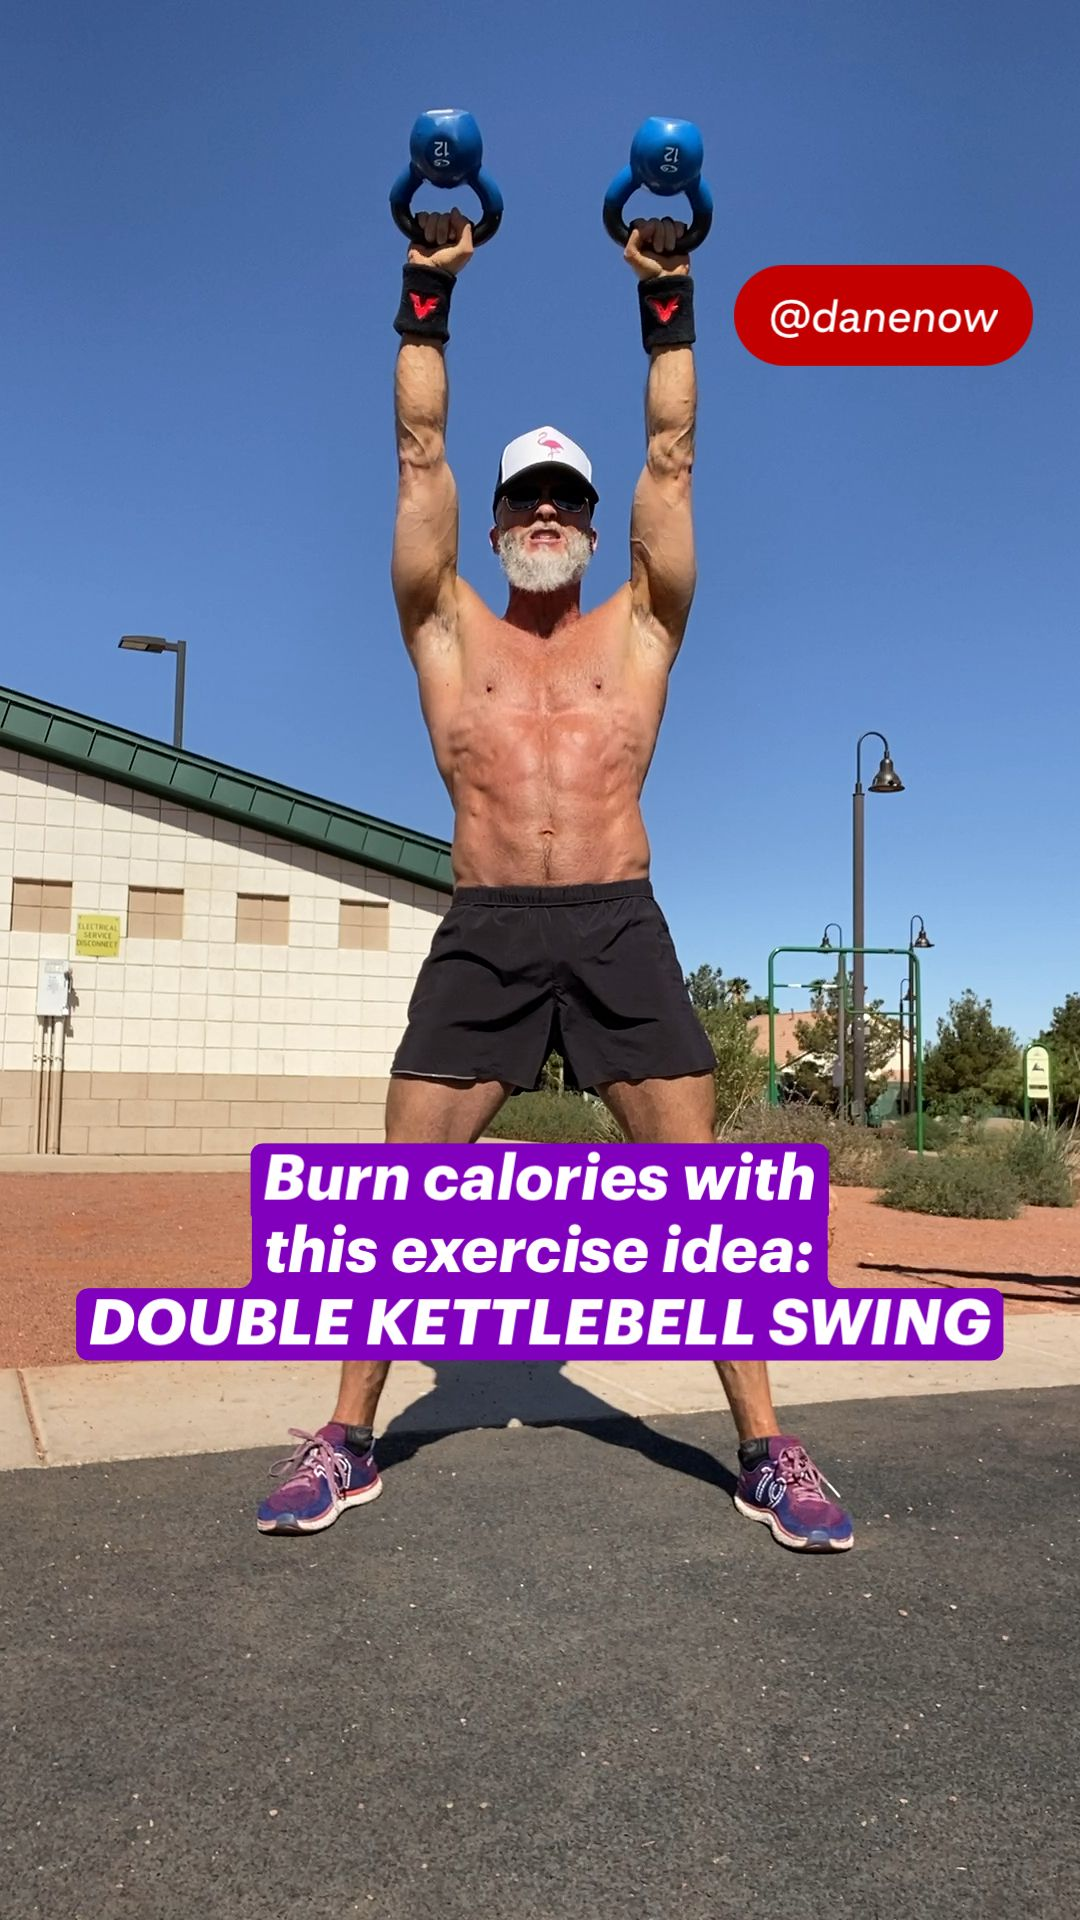 Burn calories with this exercise idea: DOUBLE KETTLEBELL SWING